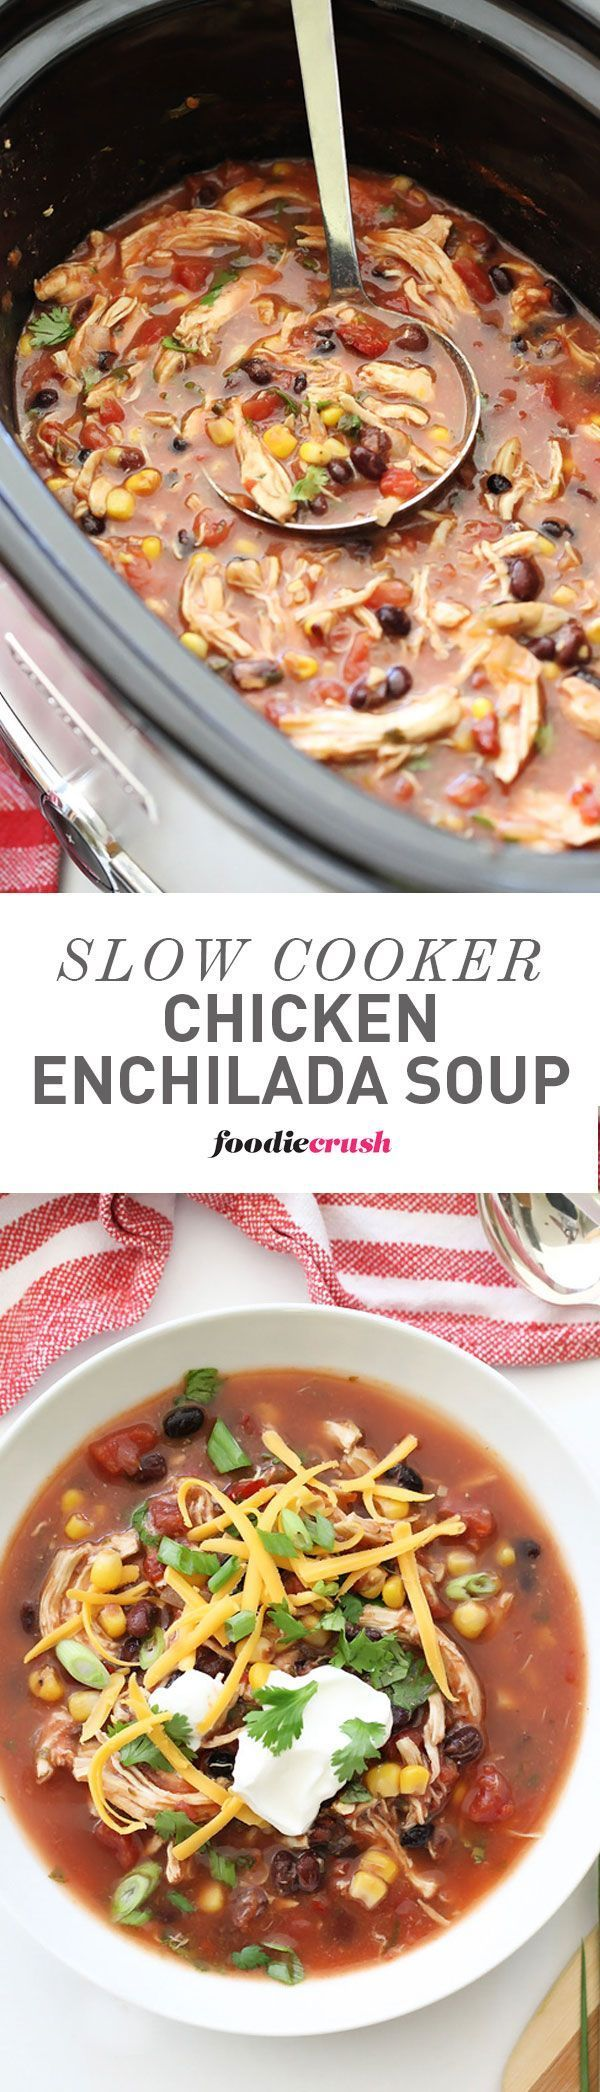 The crockpot cooked chicken came out perfectly tender and super easy to shred for an easy, healthy soup everyone loves!   foodiecrush.com